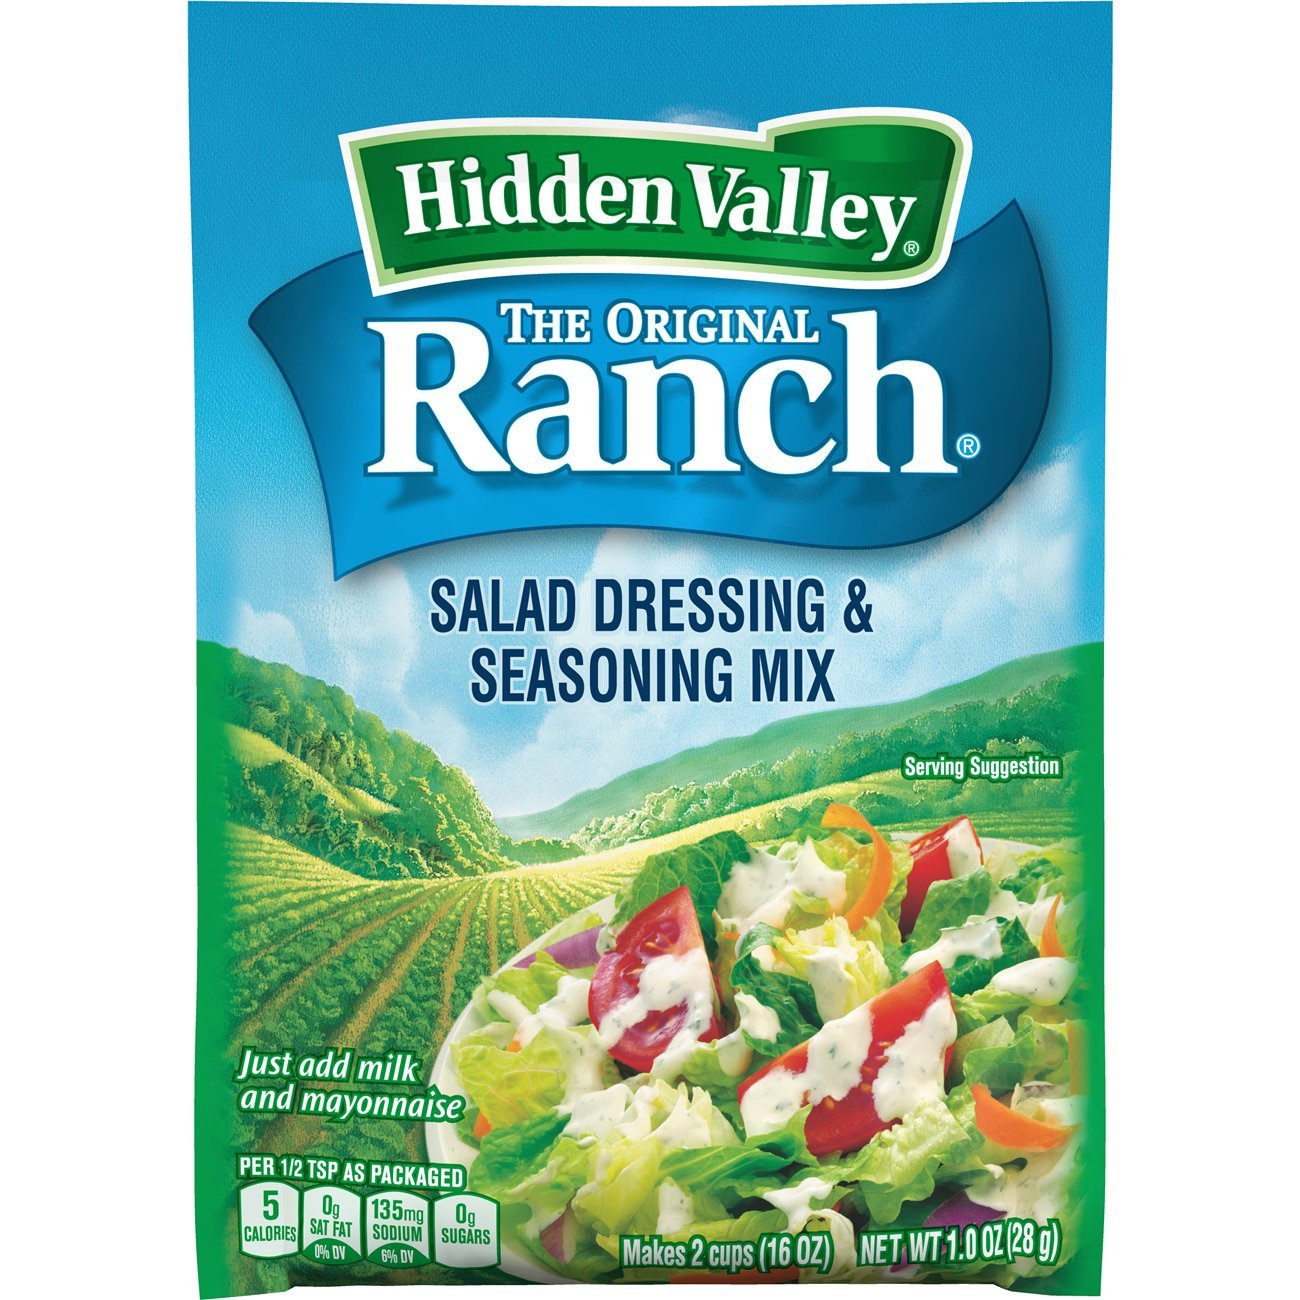 Dressing Ranch packet pictures 2019